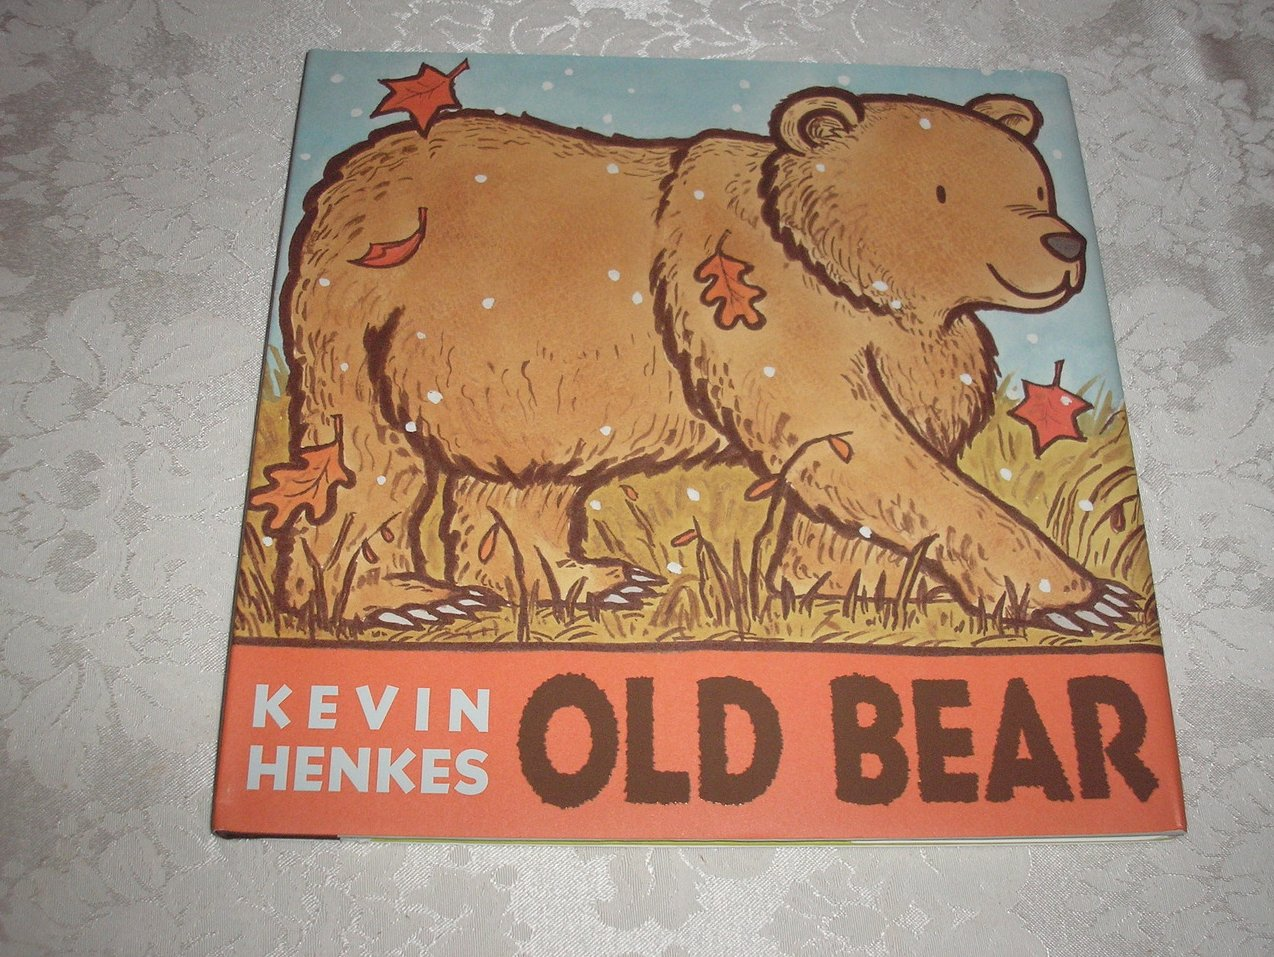 Old bear kevin henkes brand new hc with dj